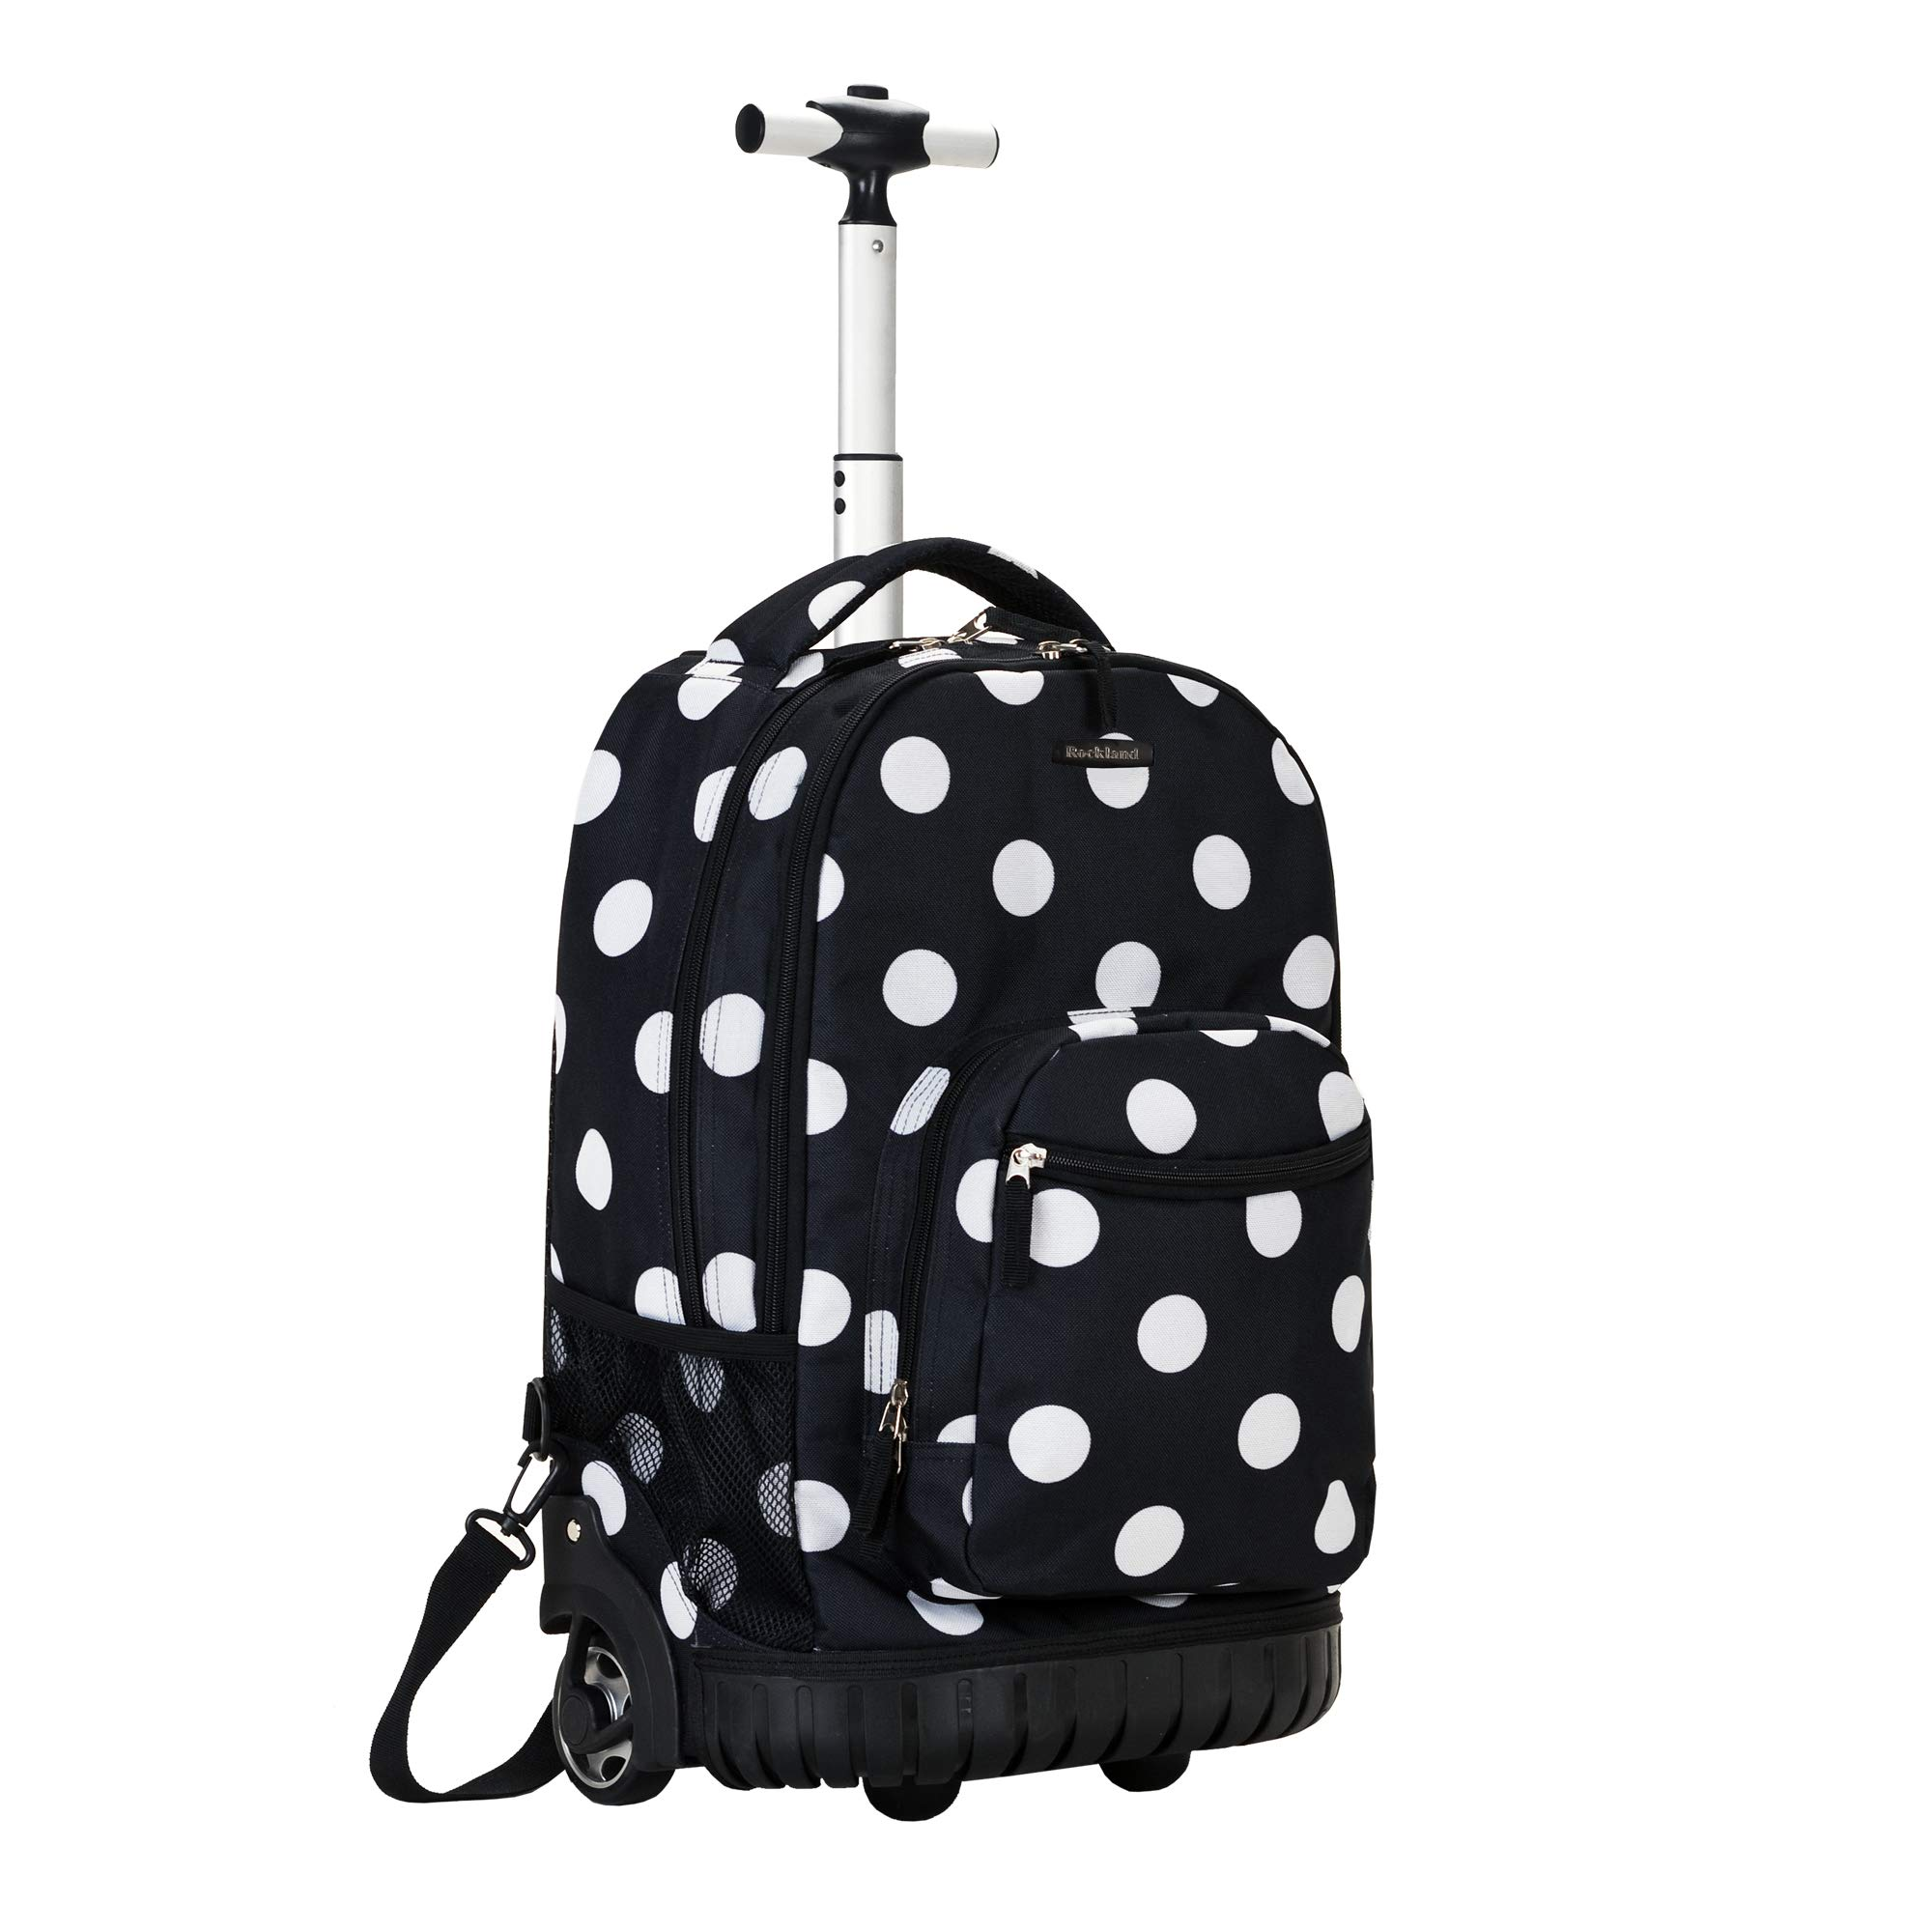 Rockland Luggage 19 Inch Rolling Backpack Printed, Black Dot, Medium by Rockland